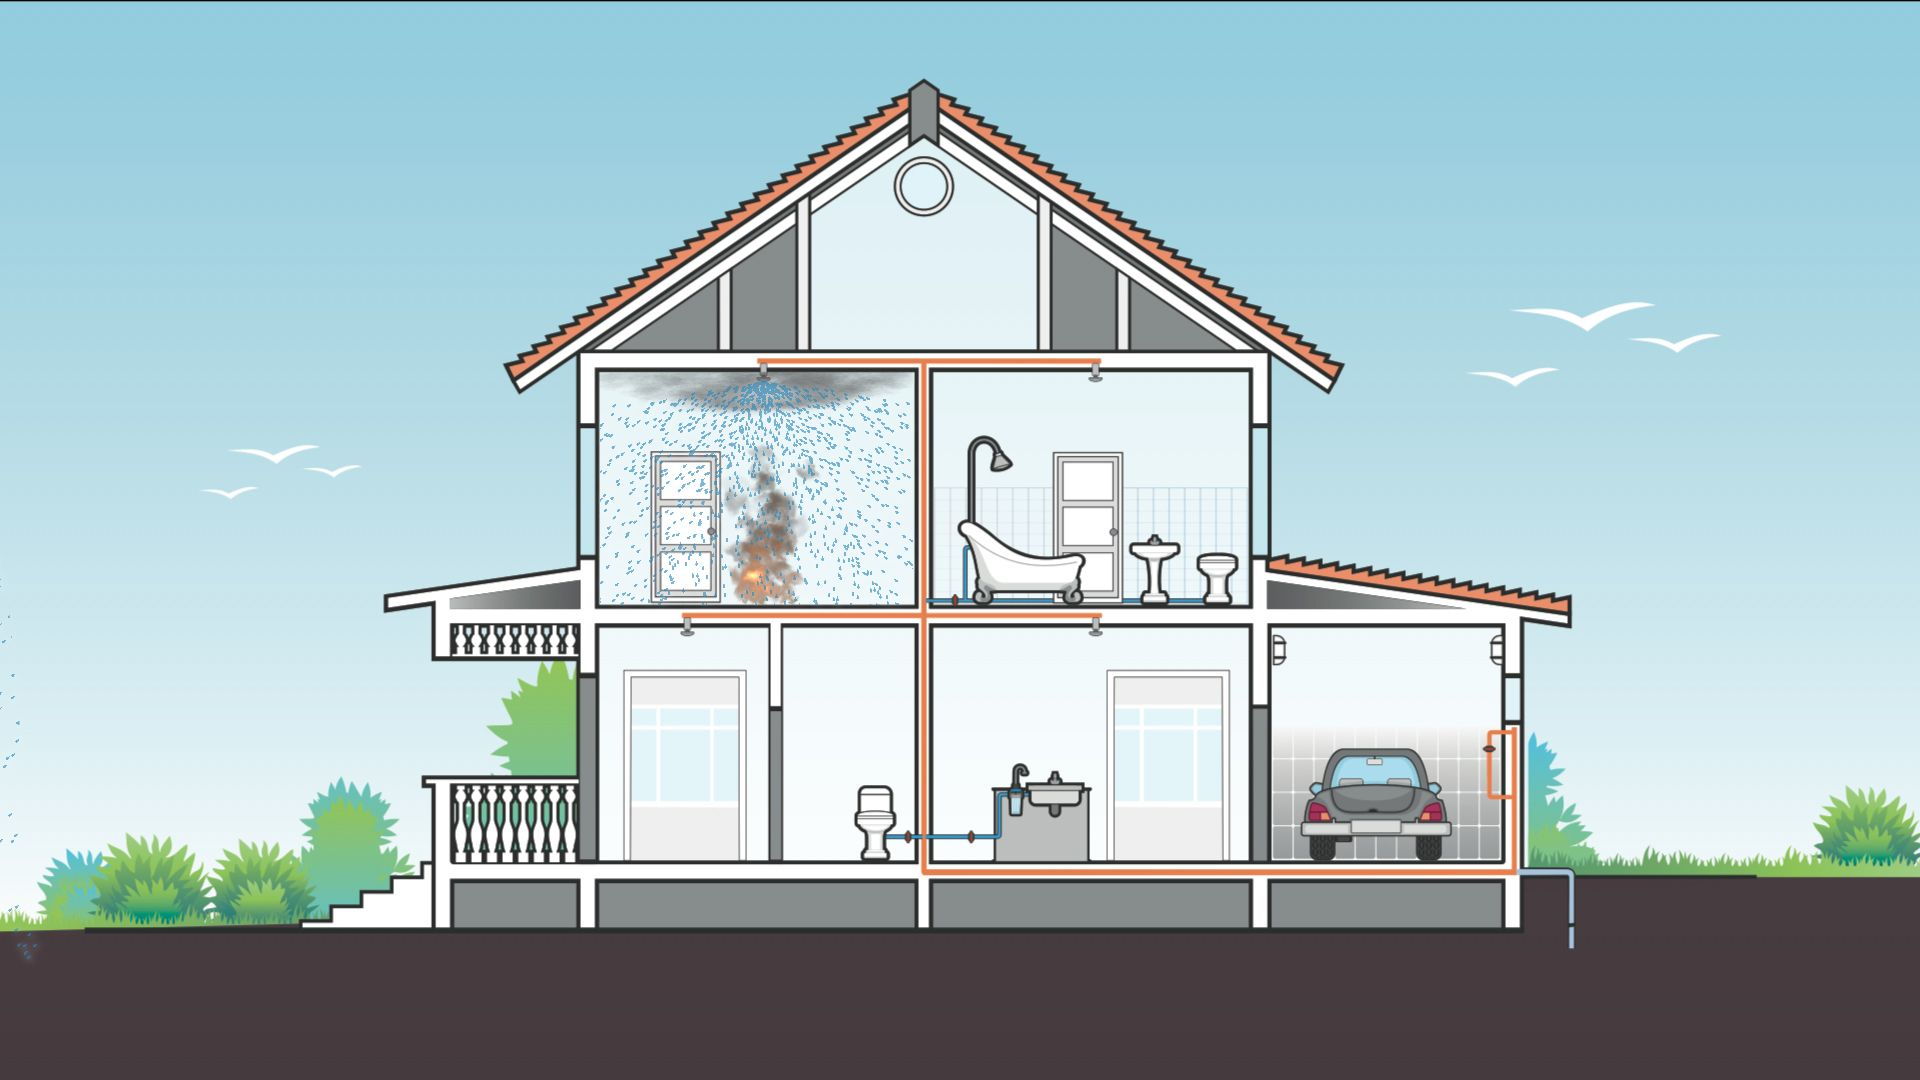 Benefits Of Tulsa Amp Okc Residential Fire Sprinklers